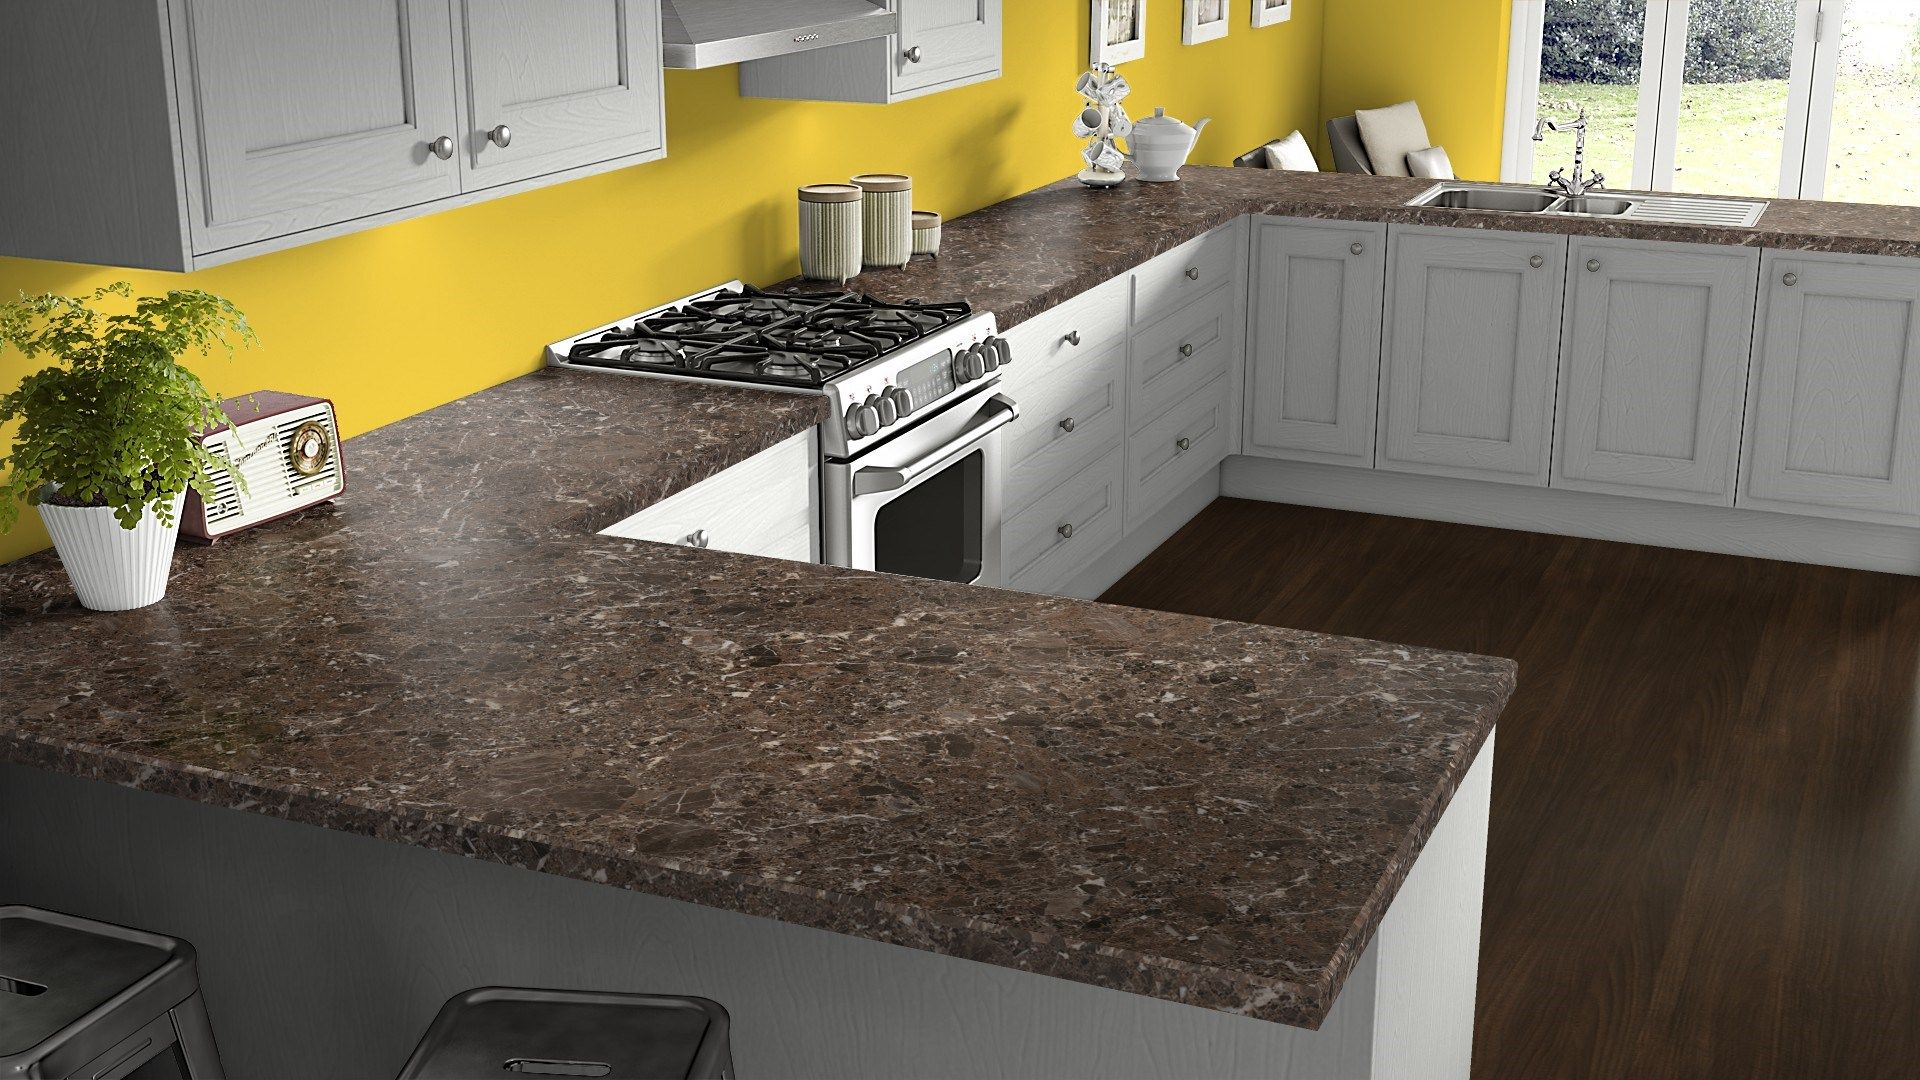 pearl soapstone Get inspired for your kitchen renovation with ... on sedona spirit laminate countertops, calcutta marble laminate countertops, milano quartz laminate countertops, rustic slate laminate countertops, black alicante laminate countertops, milano baltic laminate countertops,